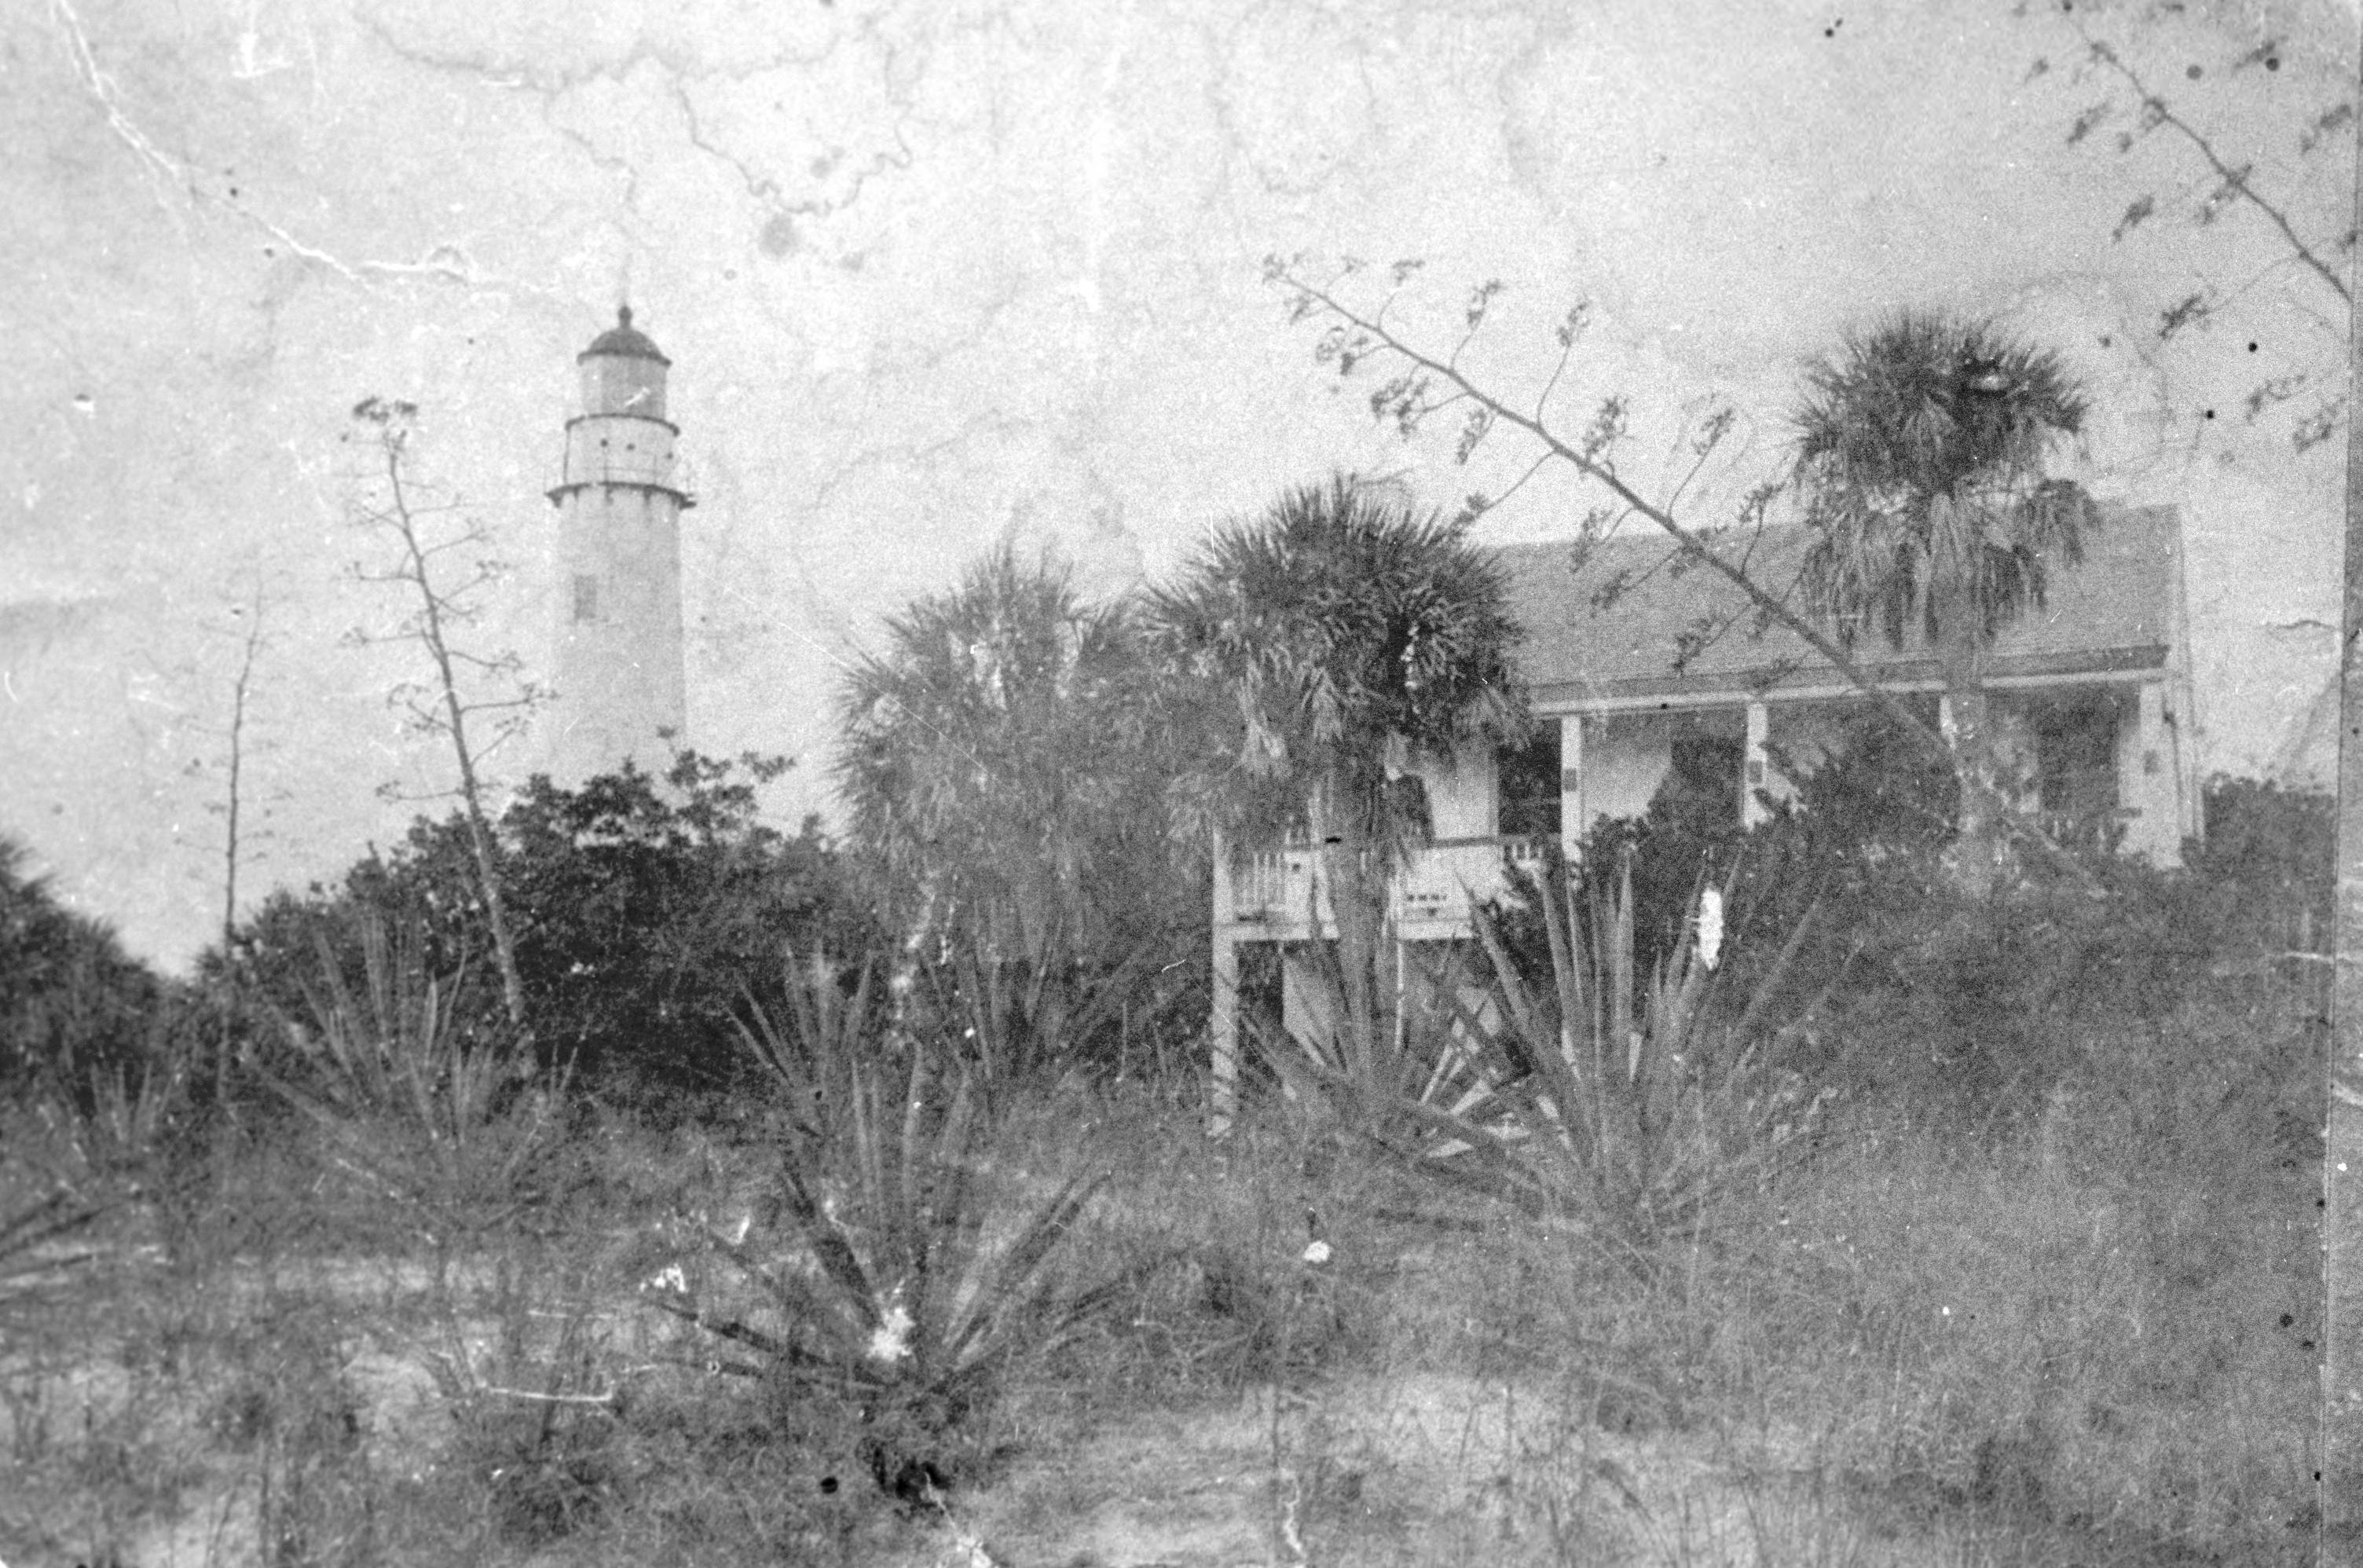 Egmont Key Lighthouse and keeper's house (ca. 1900-1910). Lighthouse keepers and their families lived close to their work in order to keep the light operating in all kinds of weather.